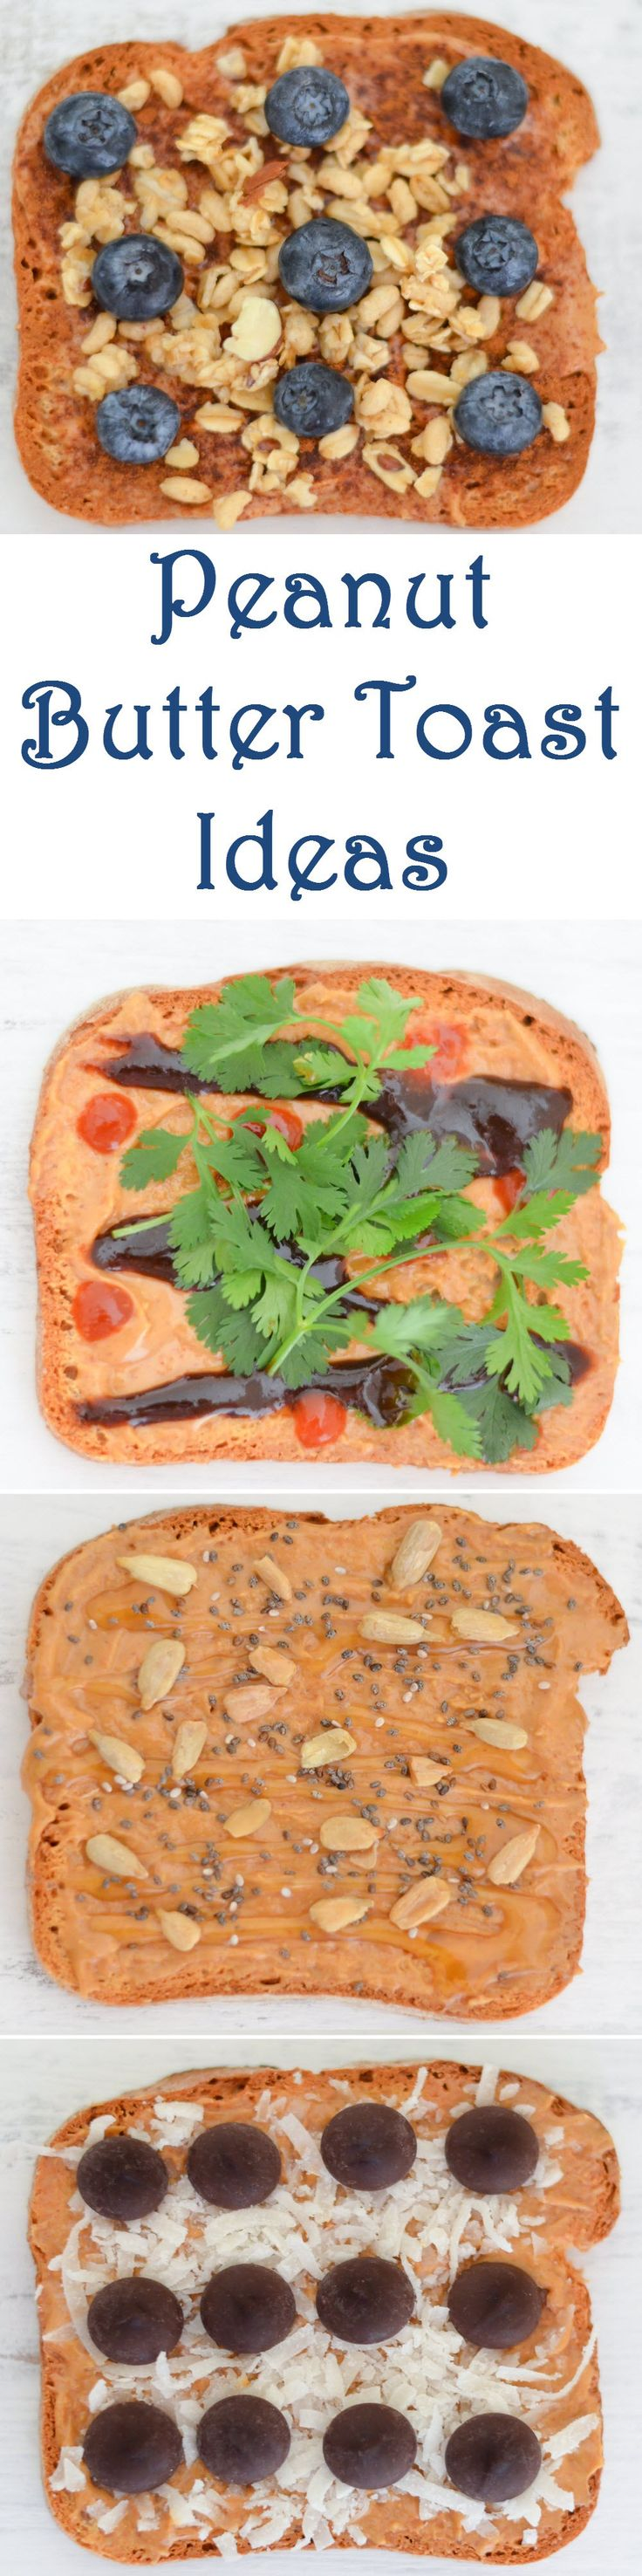 Peanut Butter Toast Ideas #peanutbutter #toast #healthy #snack #lucismorsels #foodblogger